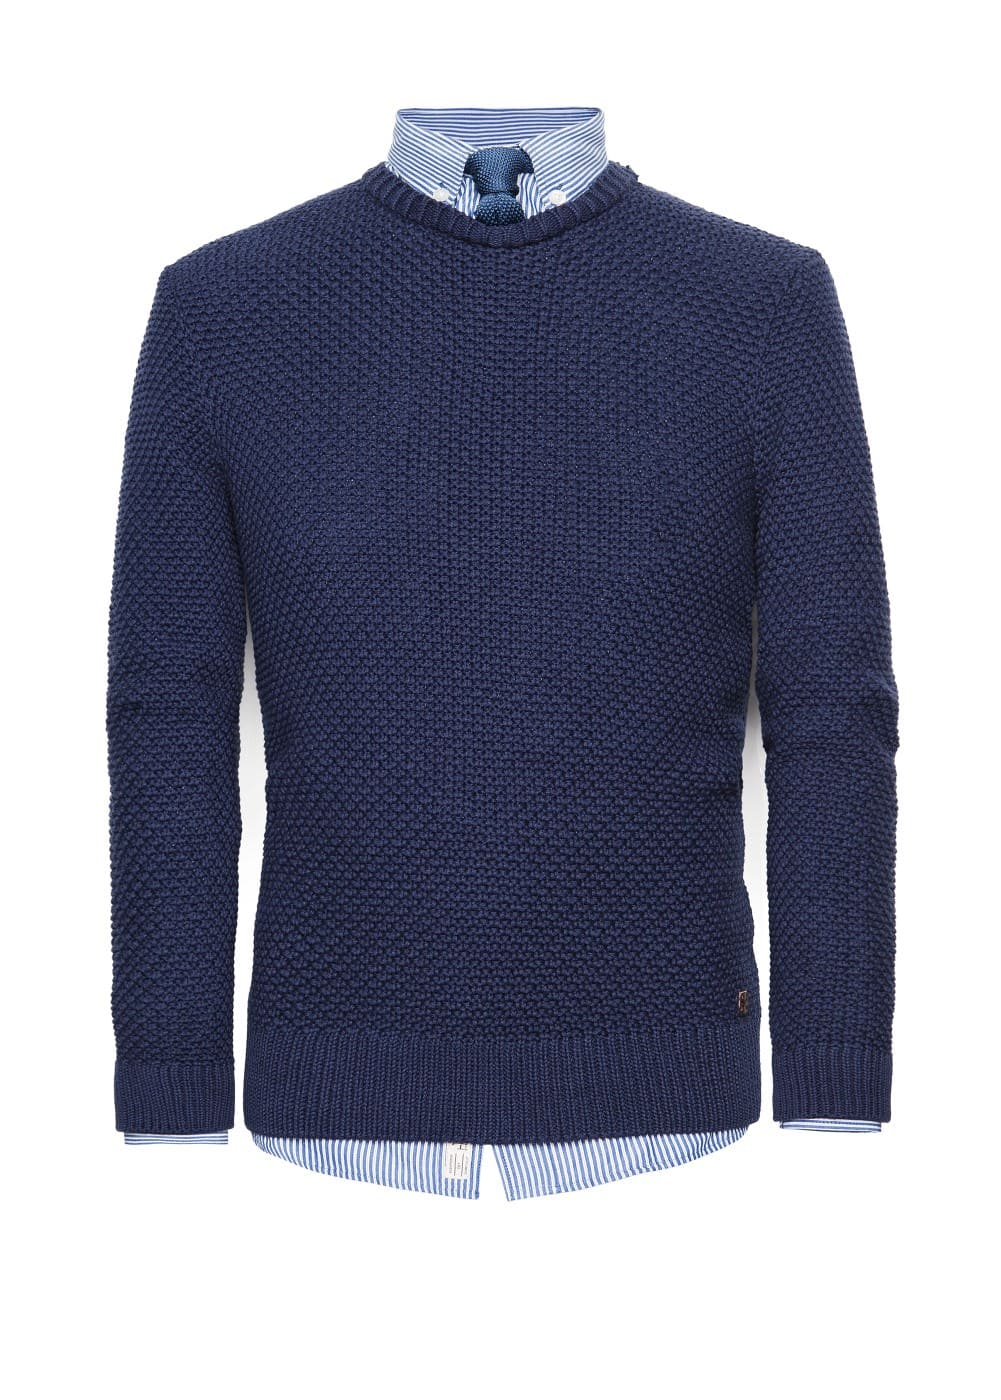 Textured knit cotton sweater | MANGO MAN